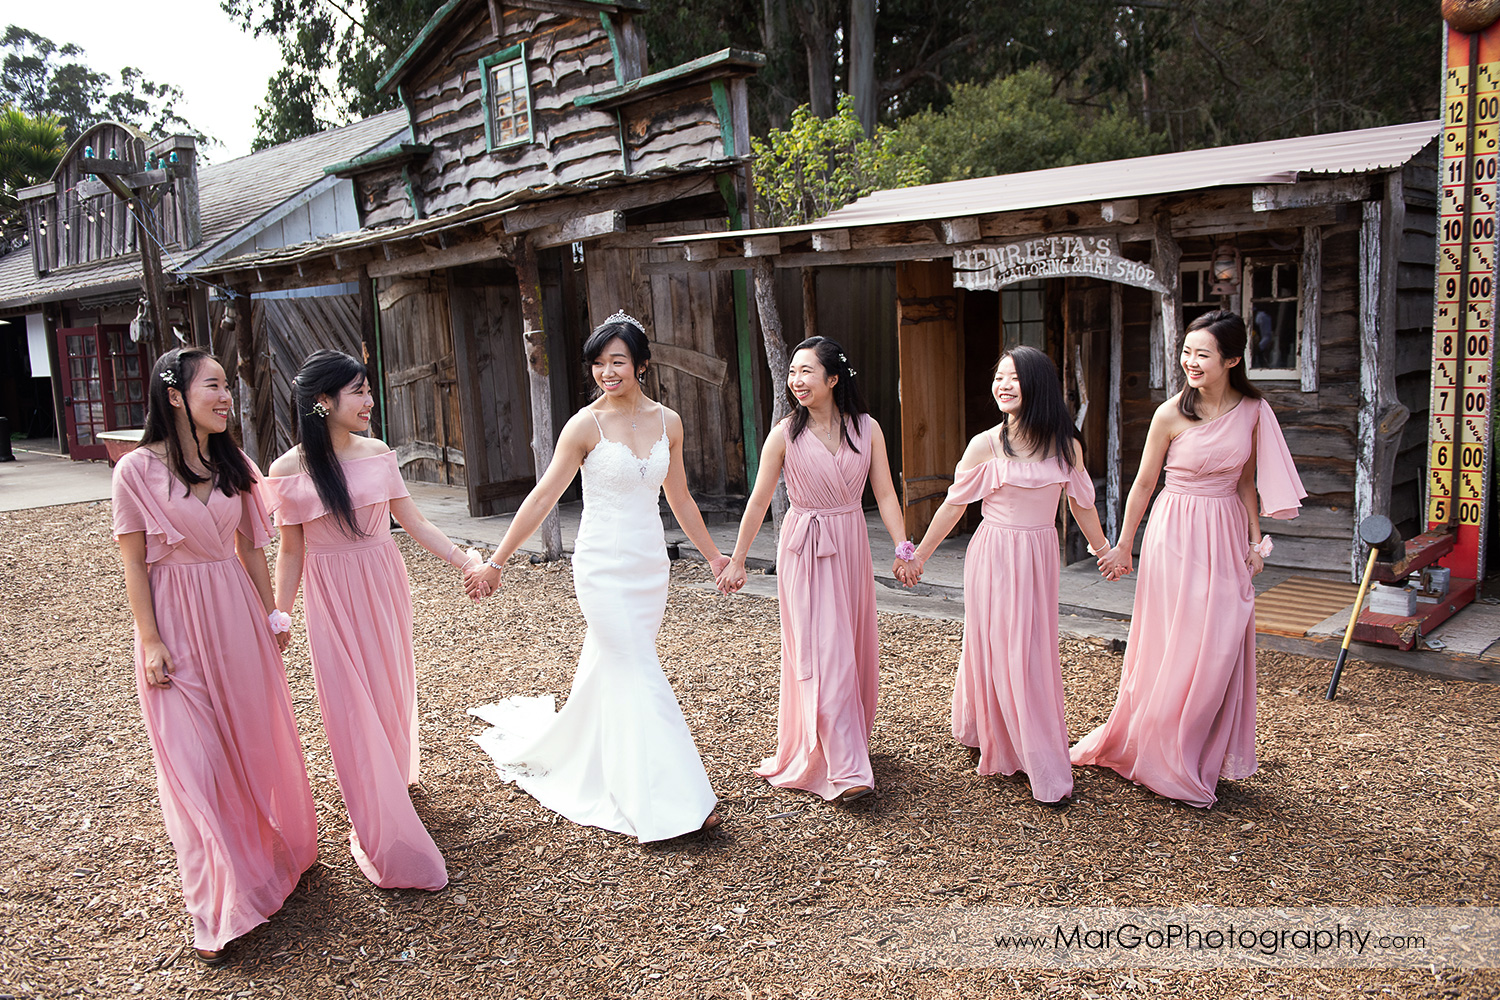 bride in white dress and bridesmaids in pink dresses walking holding hands at Long Branch Saloon & Farms in Half Moon Bay